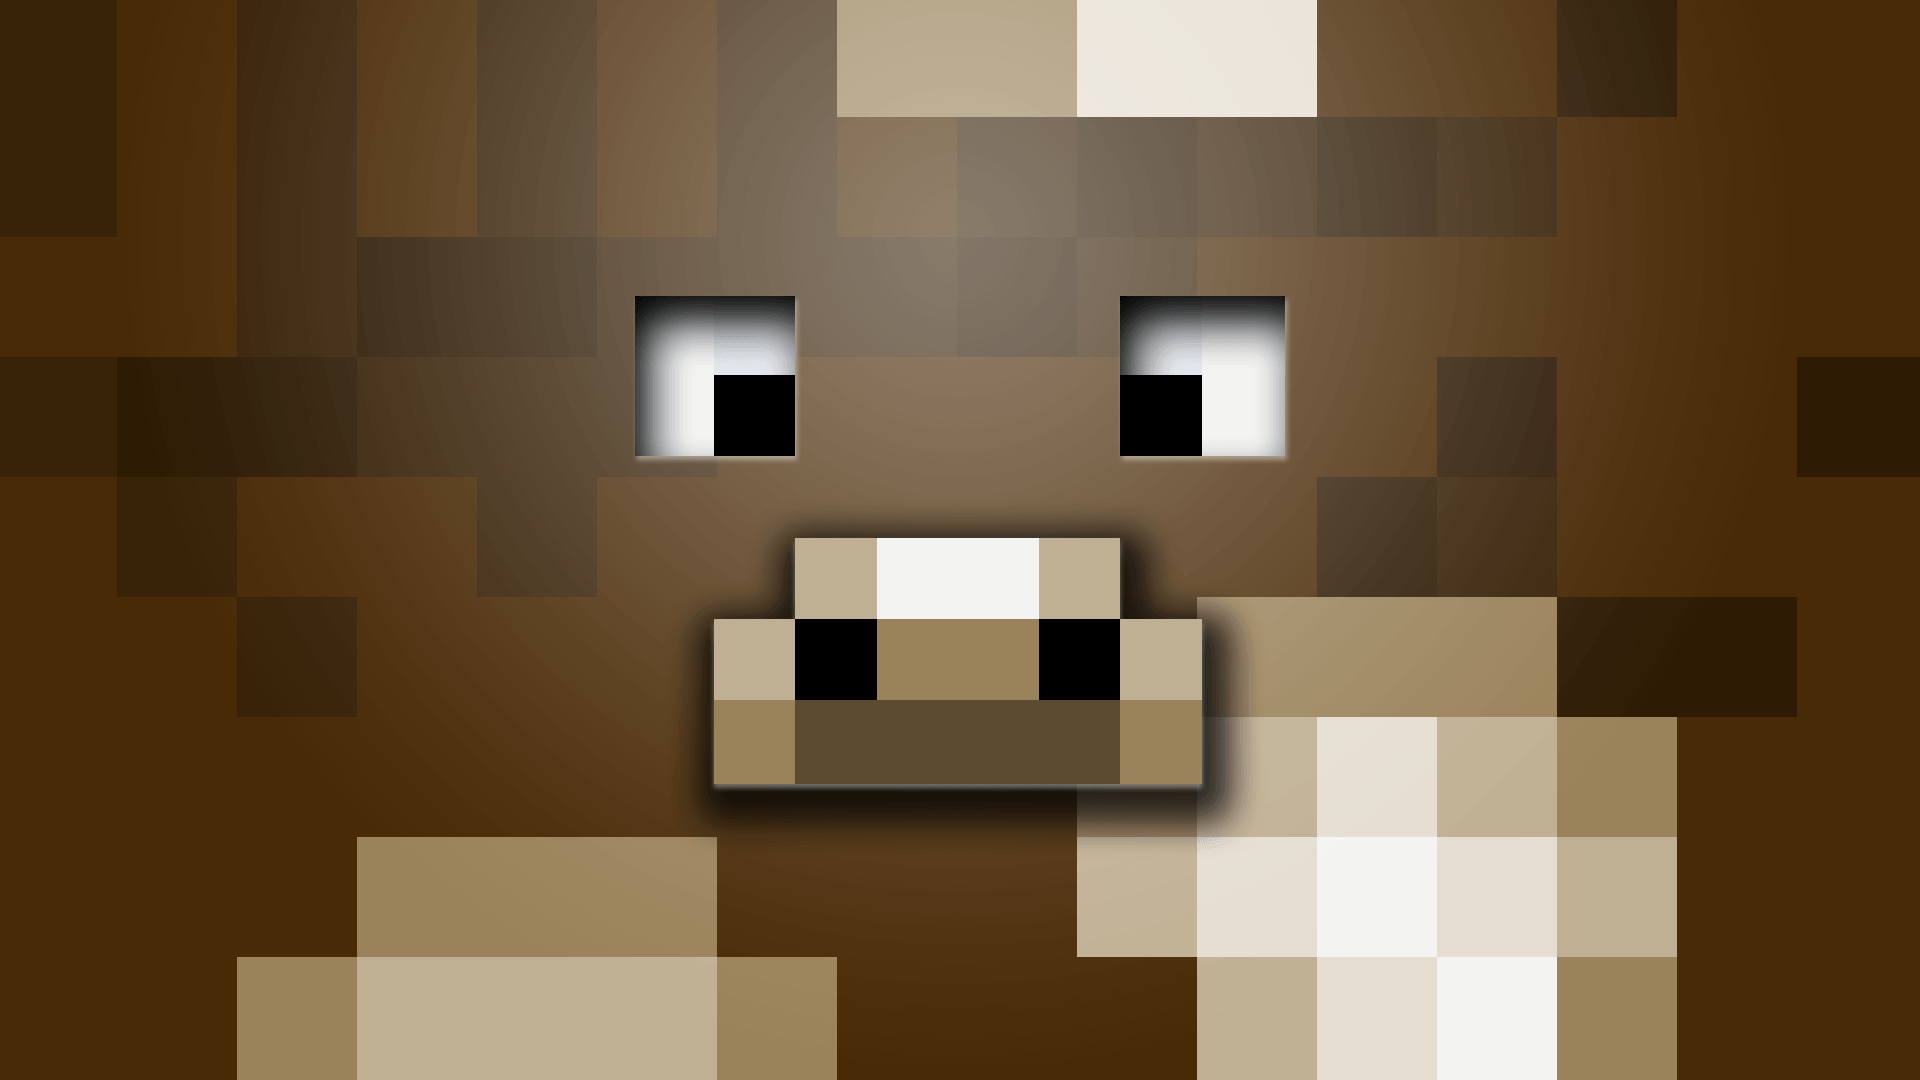 1920x1080 Steve Minecraft Wallpapers Group (77+)